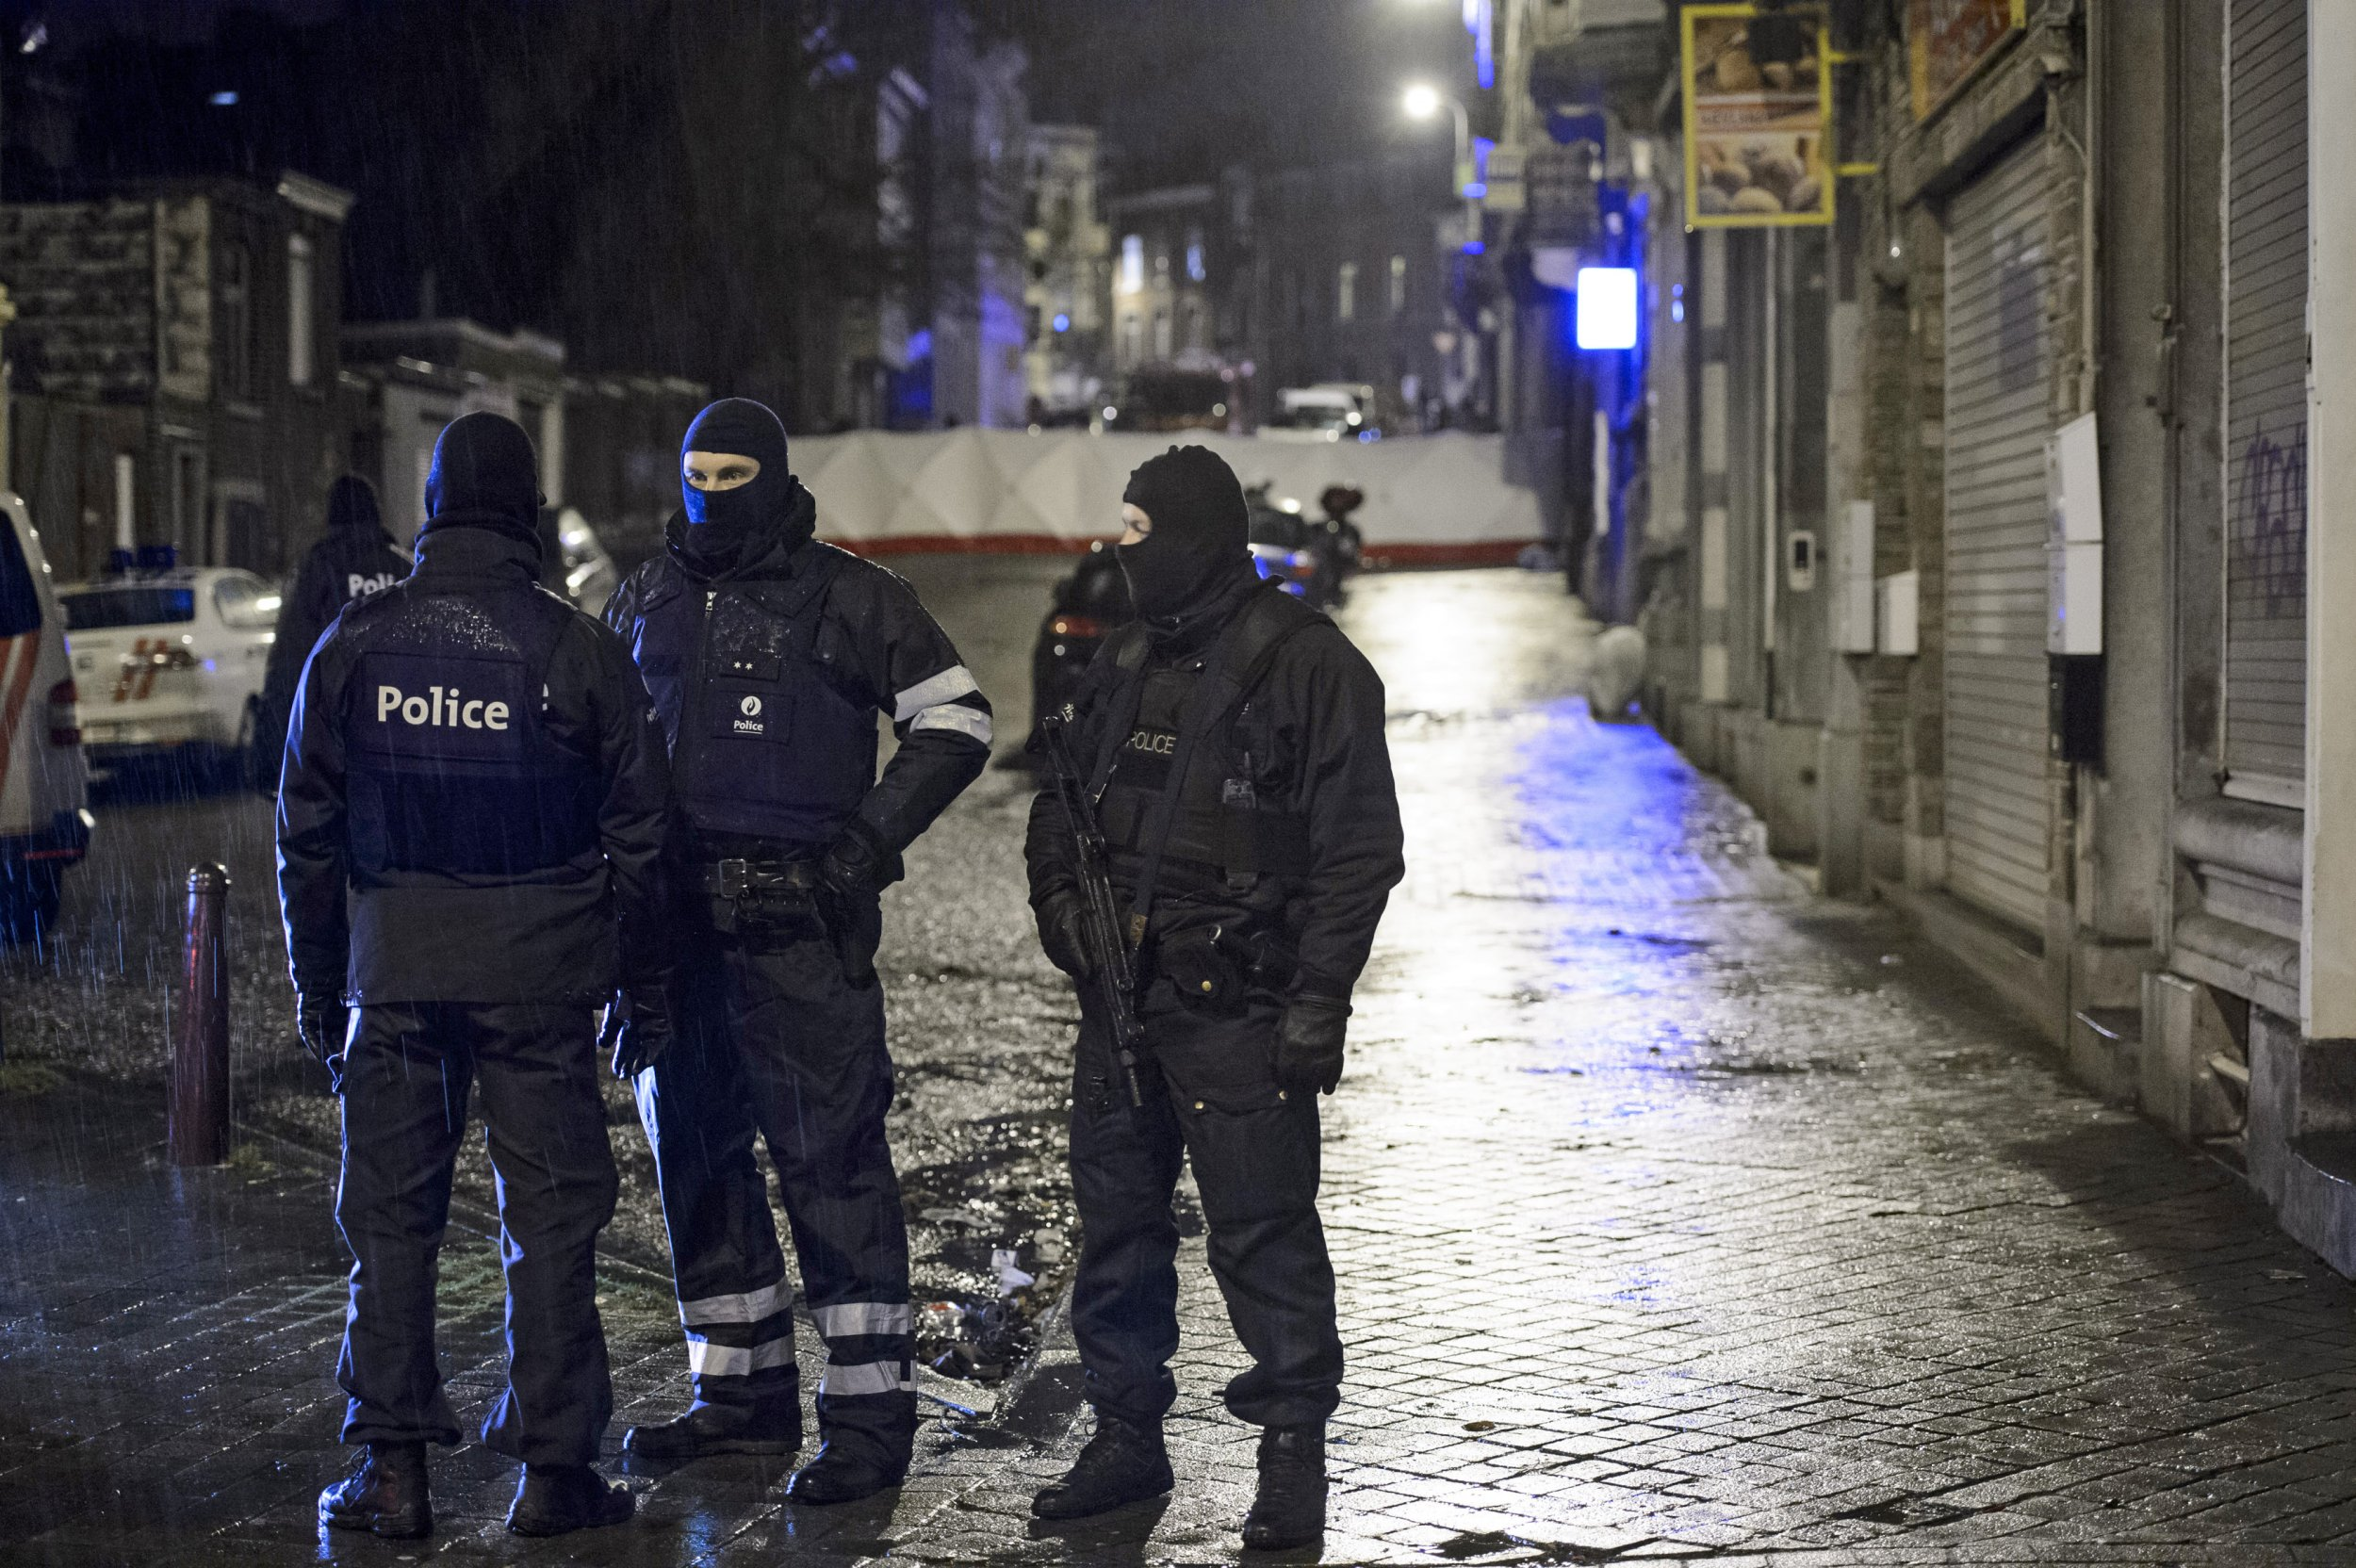 Arrests Across Europe as Security Forces Remain on High Alert